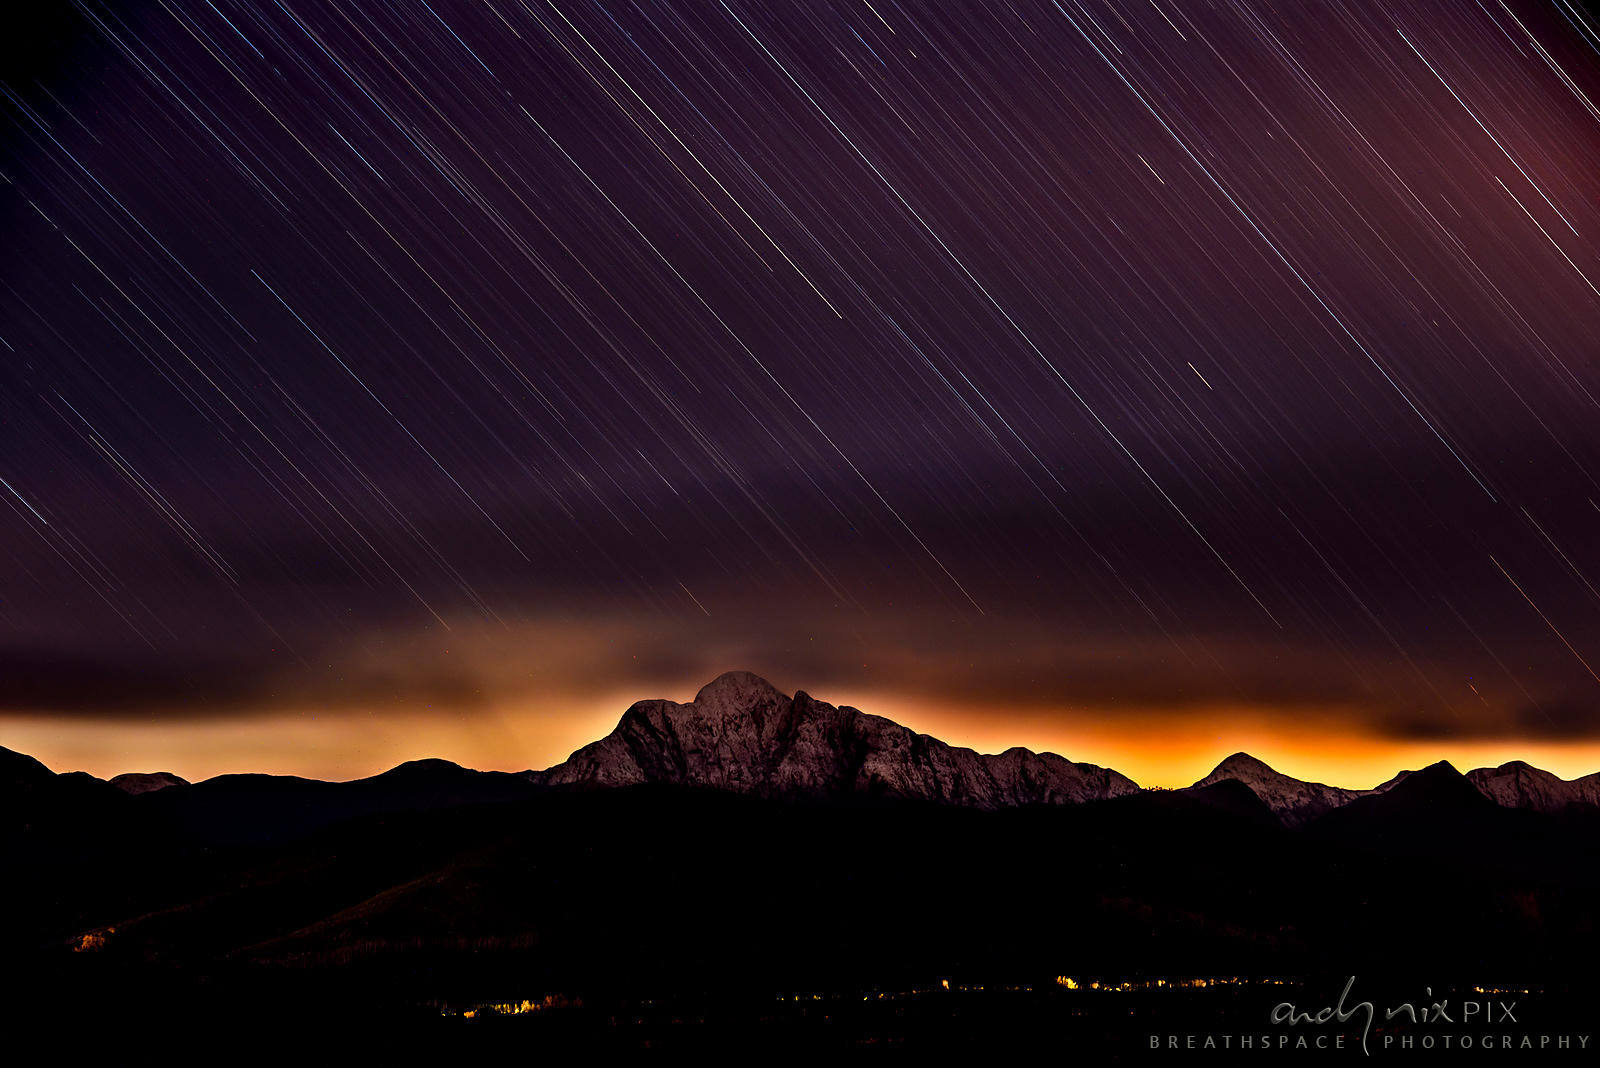 Star Trails and Night Glow over Formosa Peak